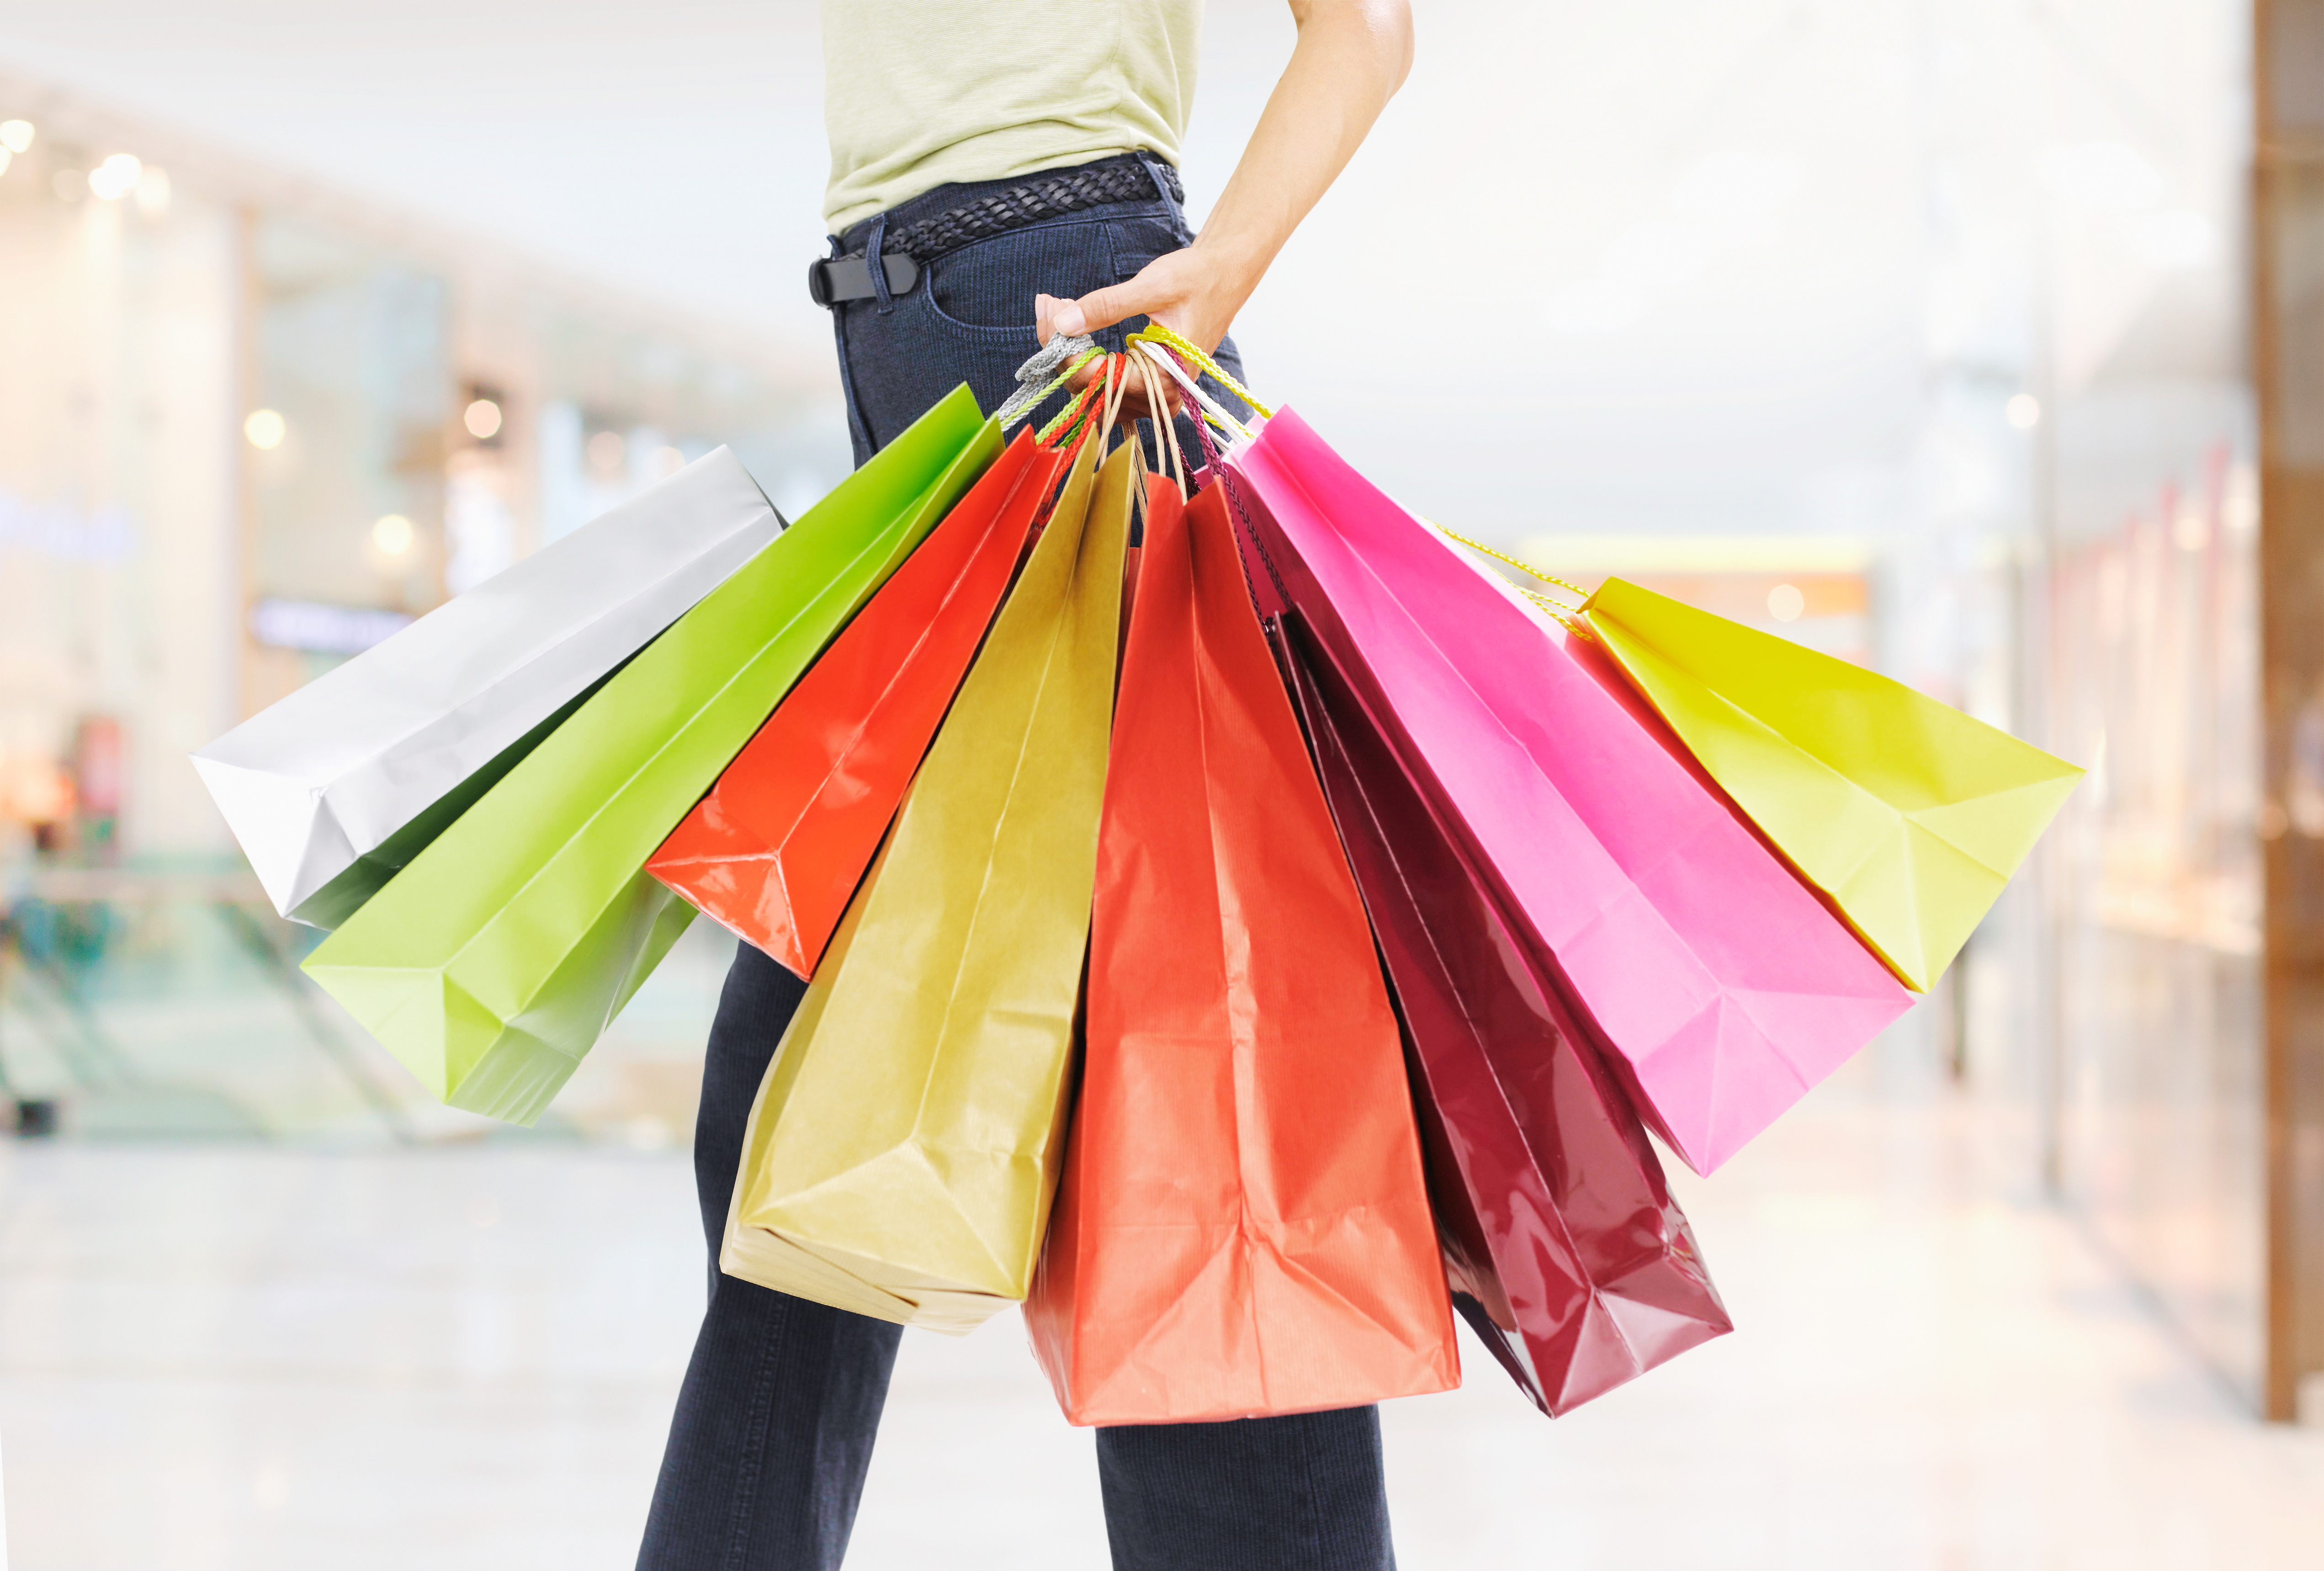 With shopping just around the corner, pick some tips from celebs who love to bag a bargain or two